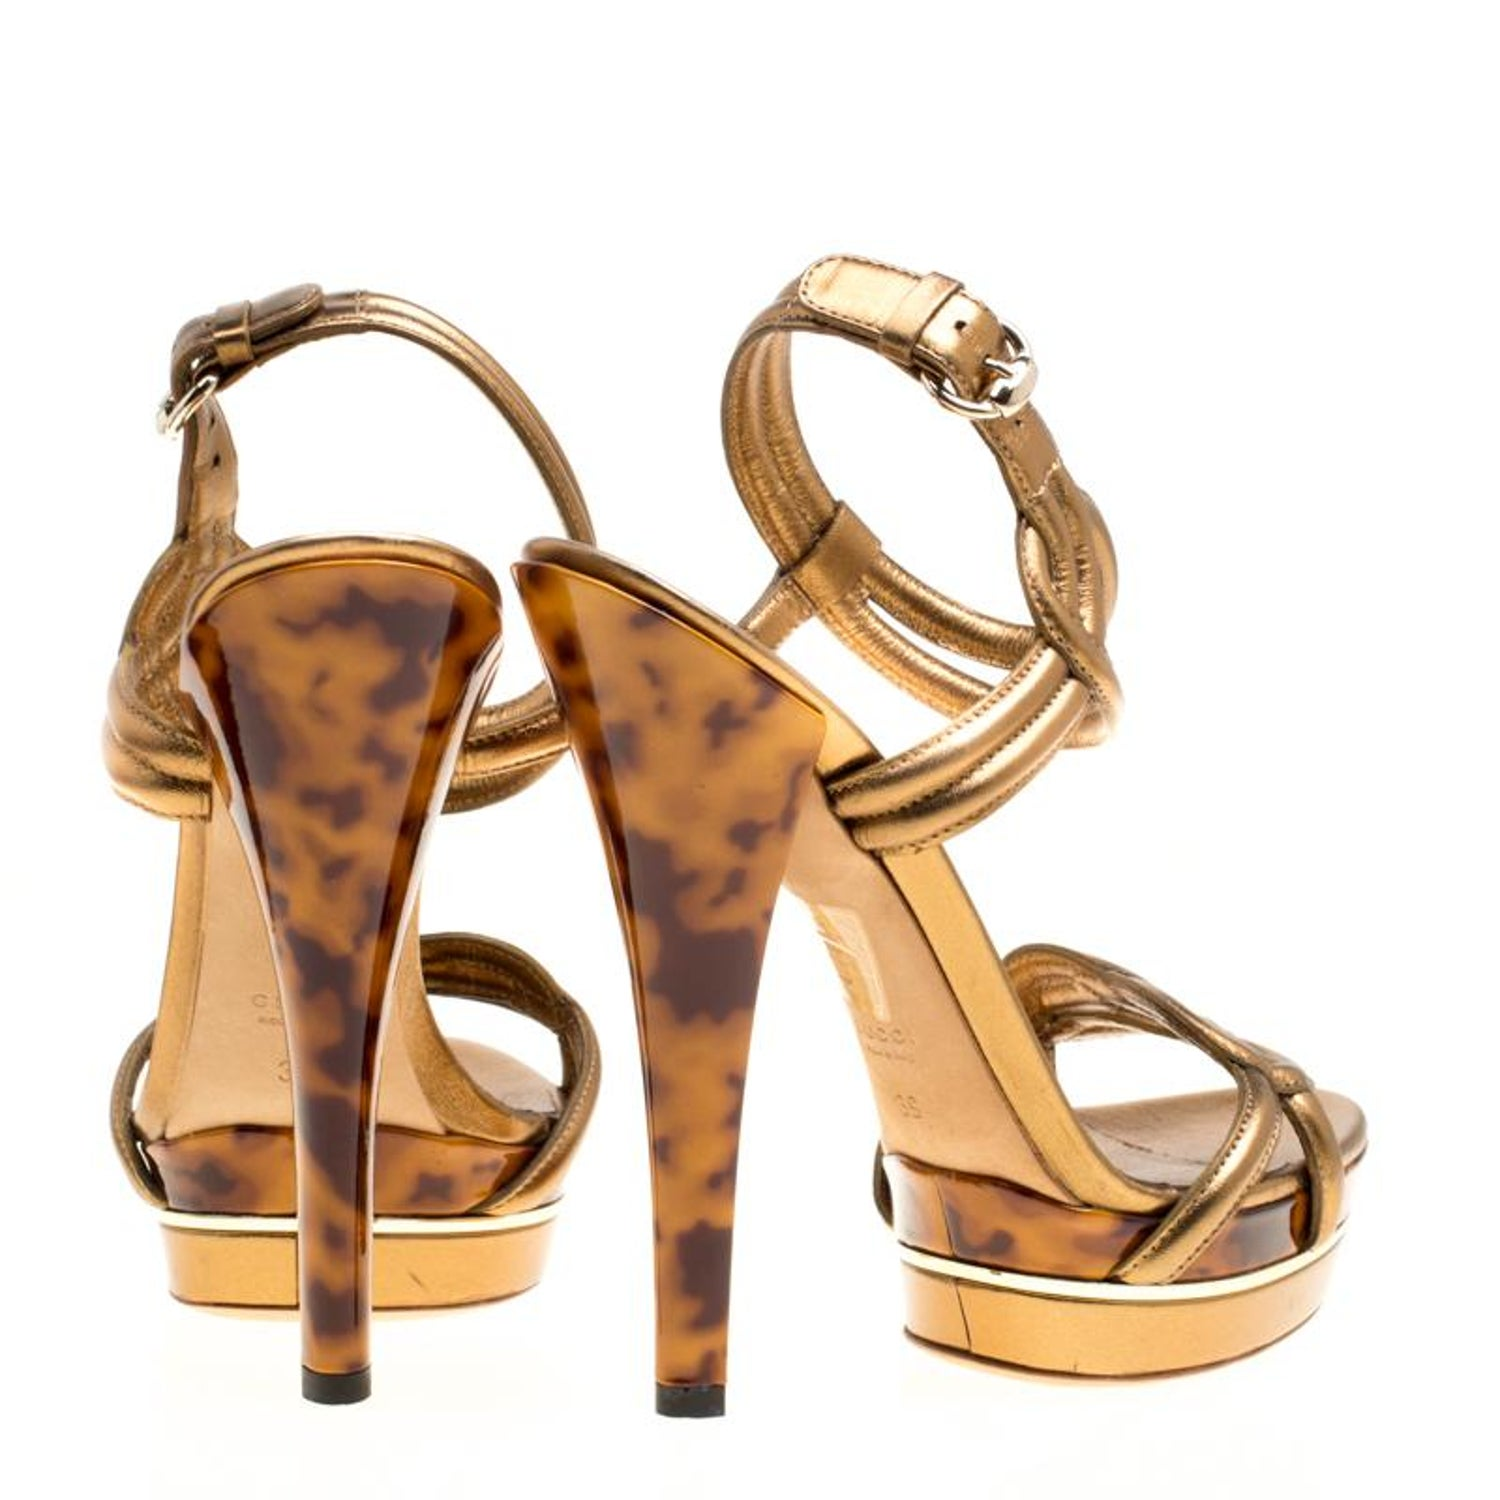 253e17f3d325 Gucci Metallic Bronze Leather Orchid Twist Detail Tortoise Heel Platform  Sandals For Sale at 1stdibs